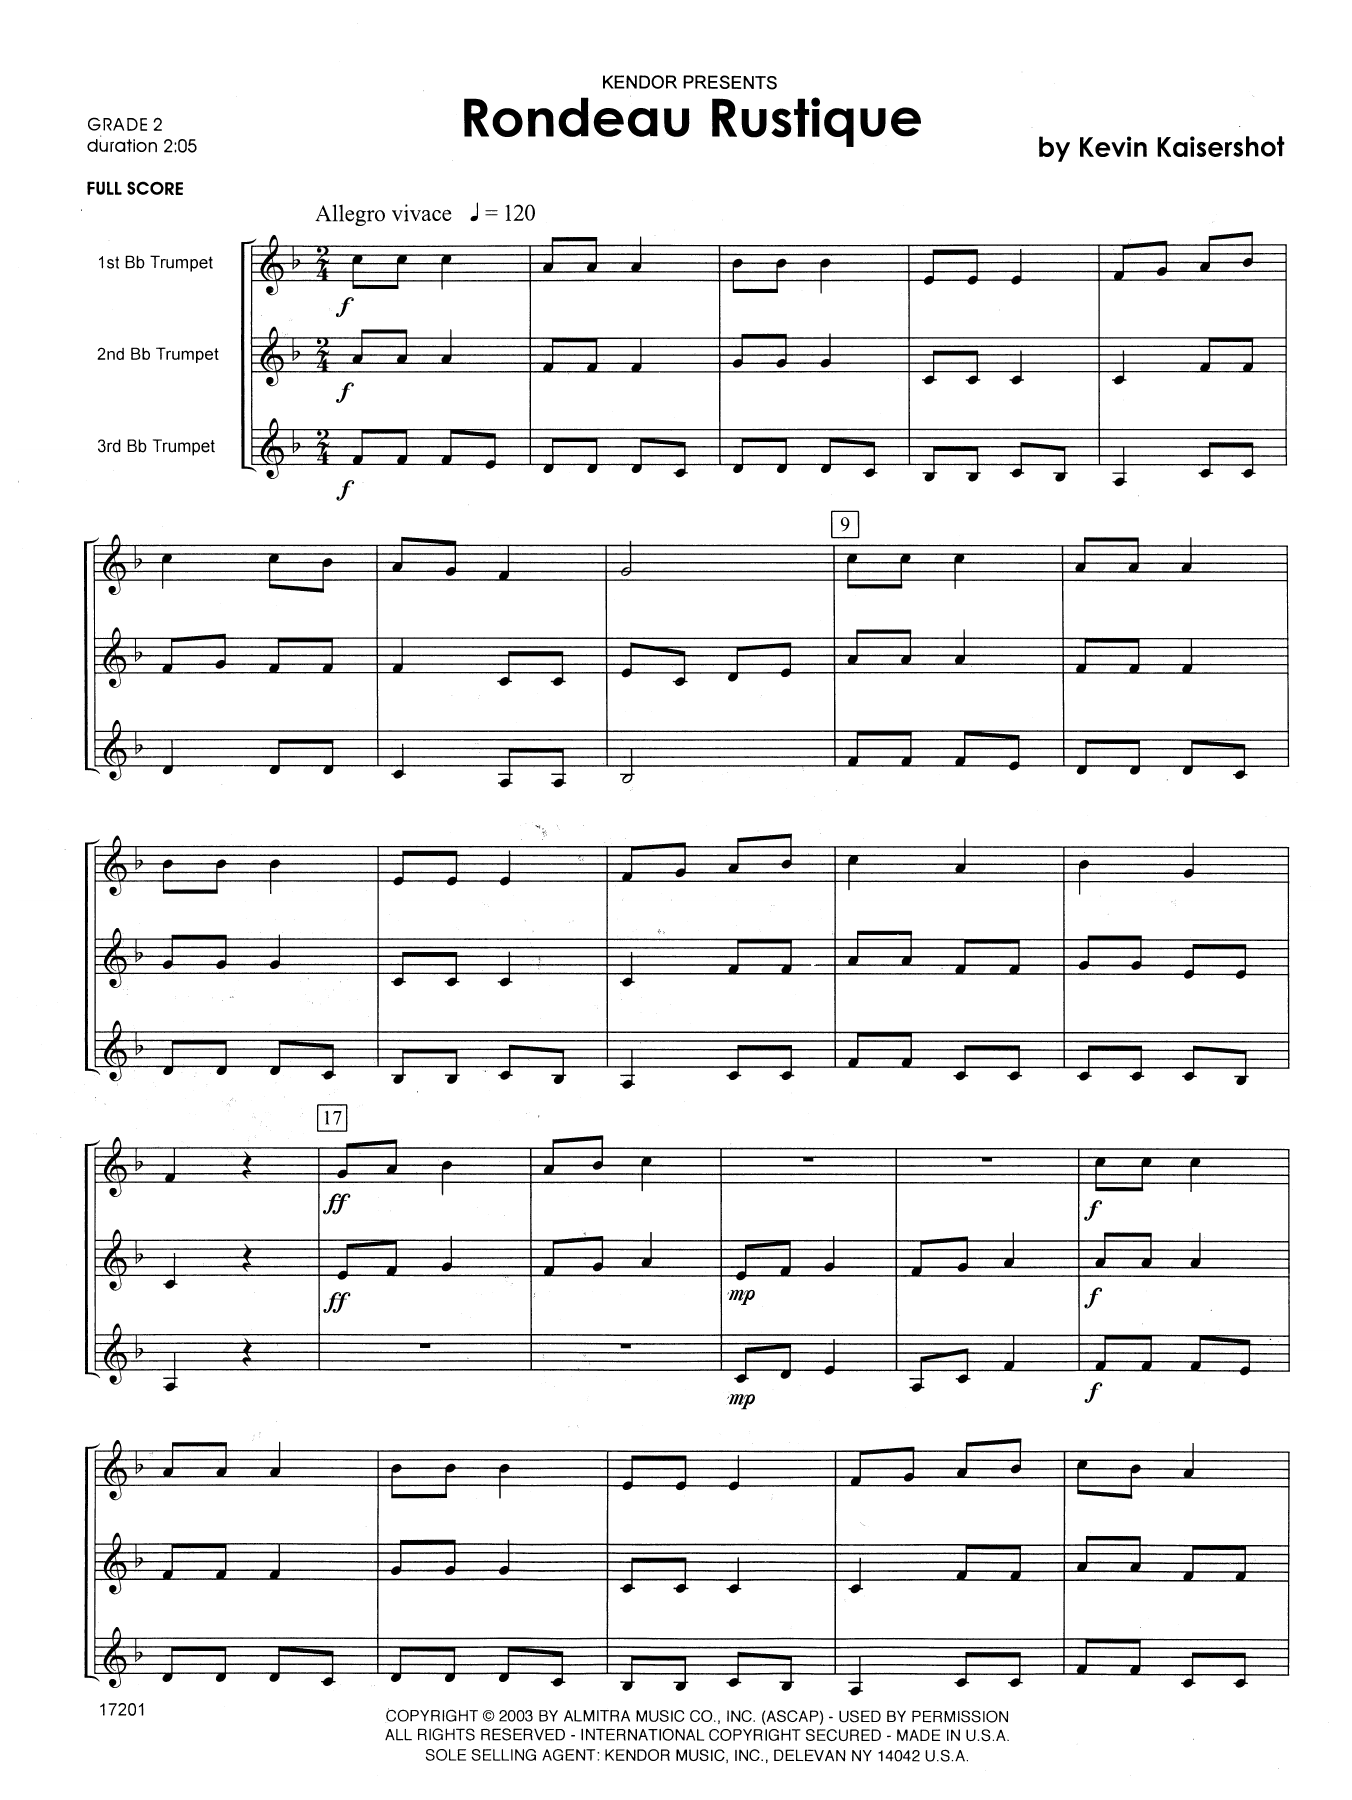 Rondeau Rustique - Full Score Sheet Music